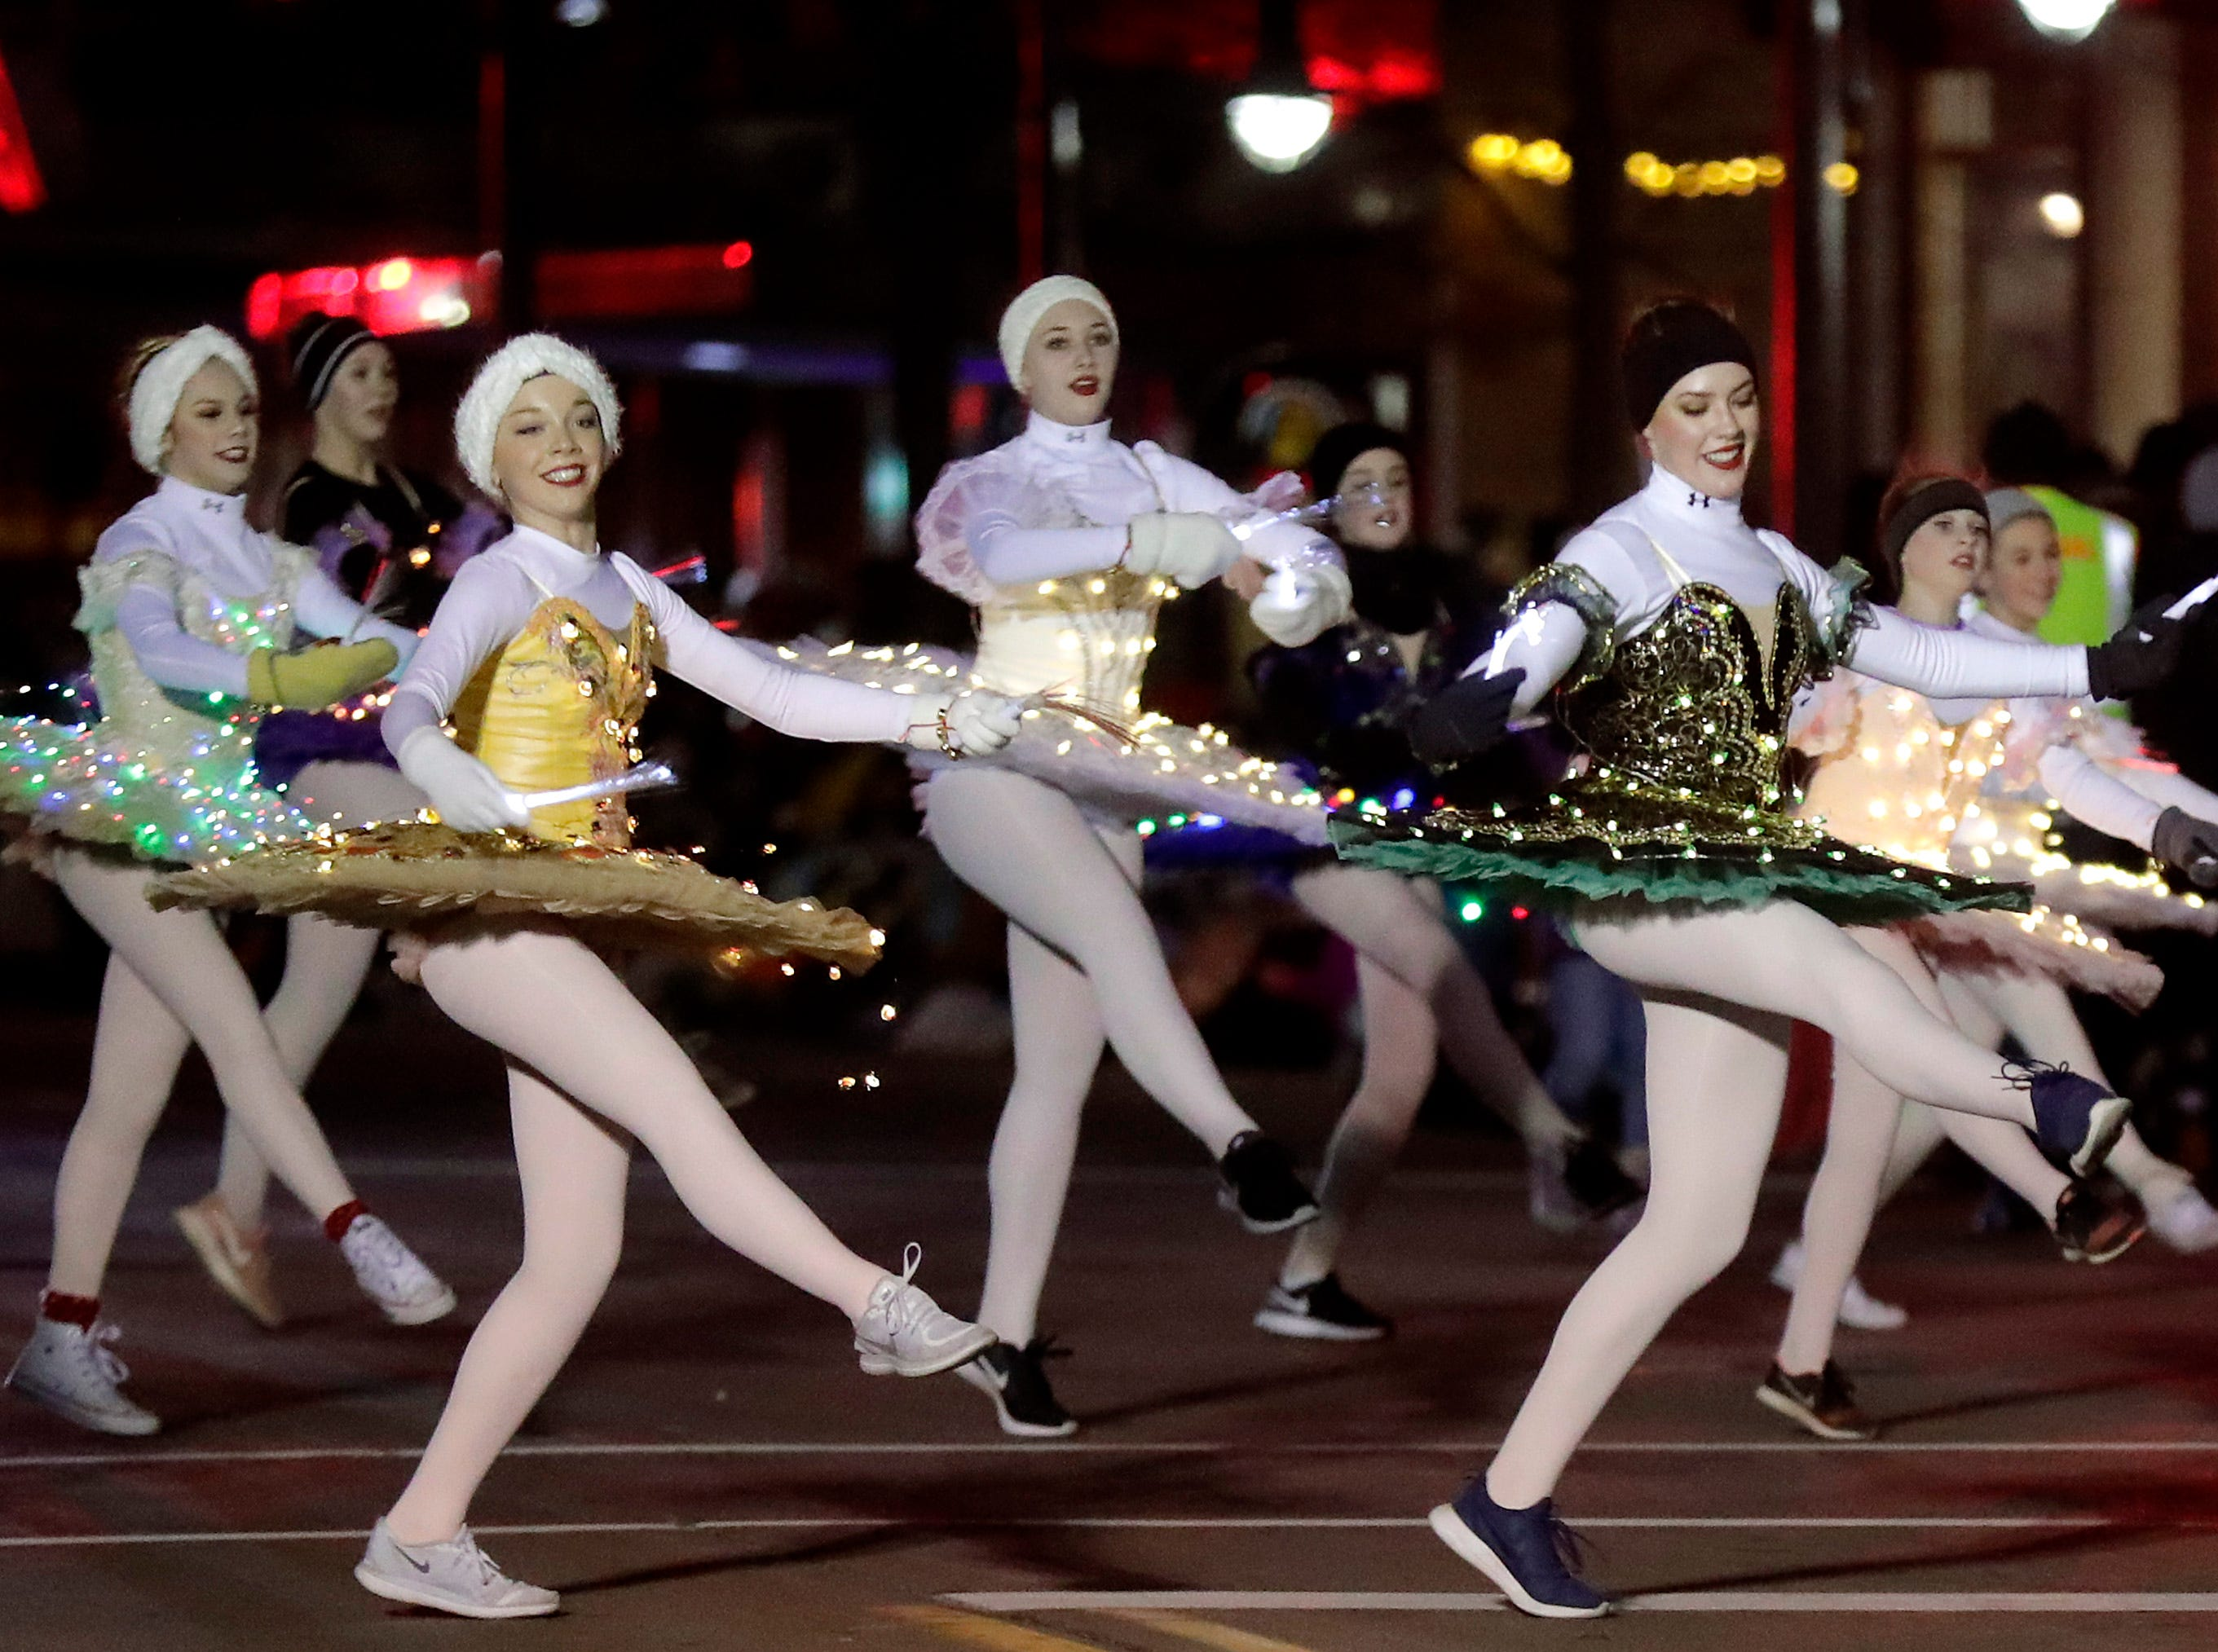 """The 48th Annual Downtown Appleton Christmas Parade on Tuesday, Nov. 20, 2018 in Appleton, Wis. This year's theme was """"Home for the Holidays."""" Wm. Glasheen/USA TODAY NETWORK-Wisconsin."""